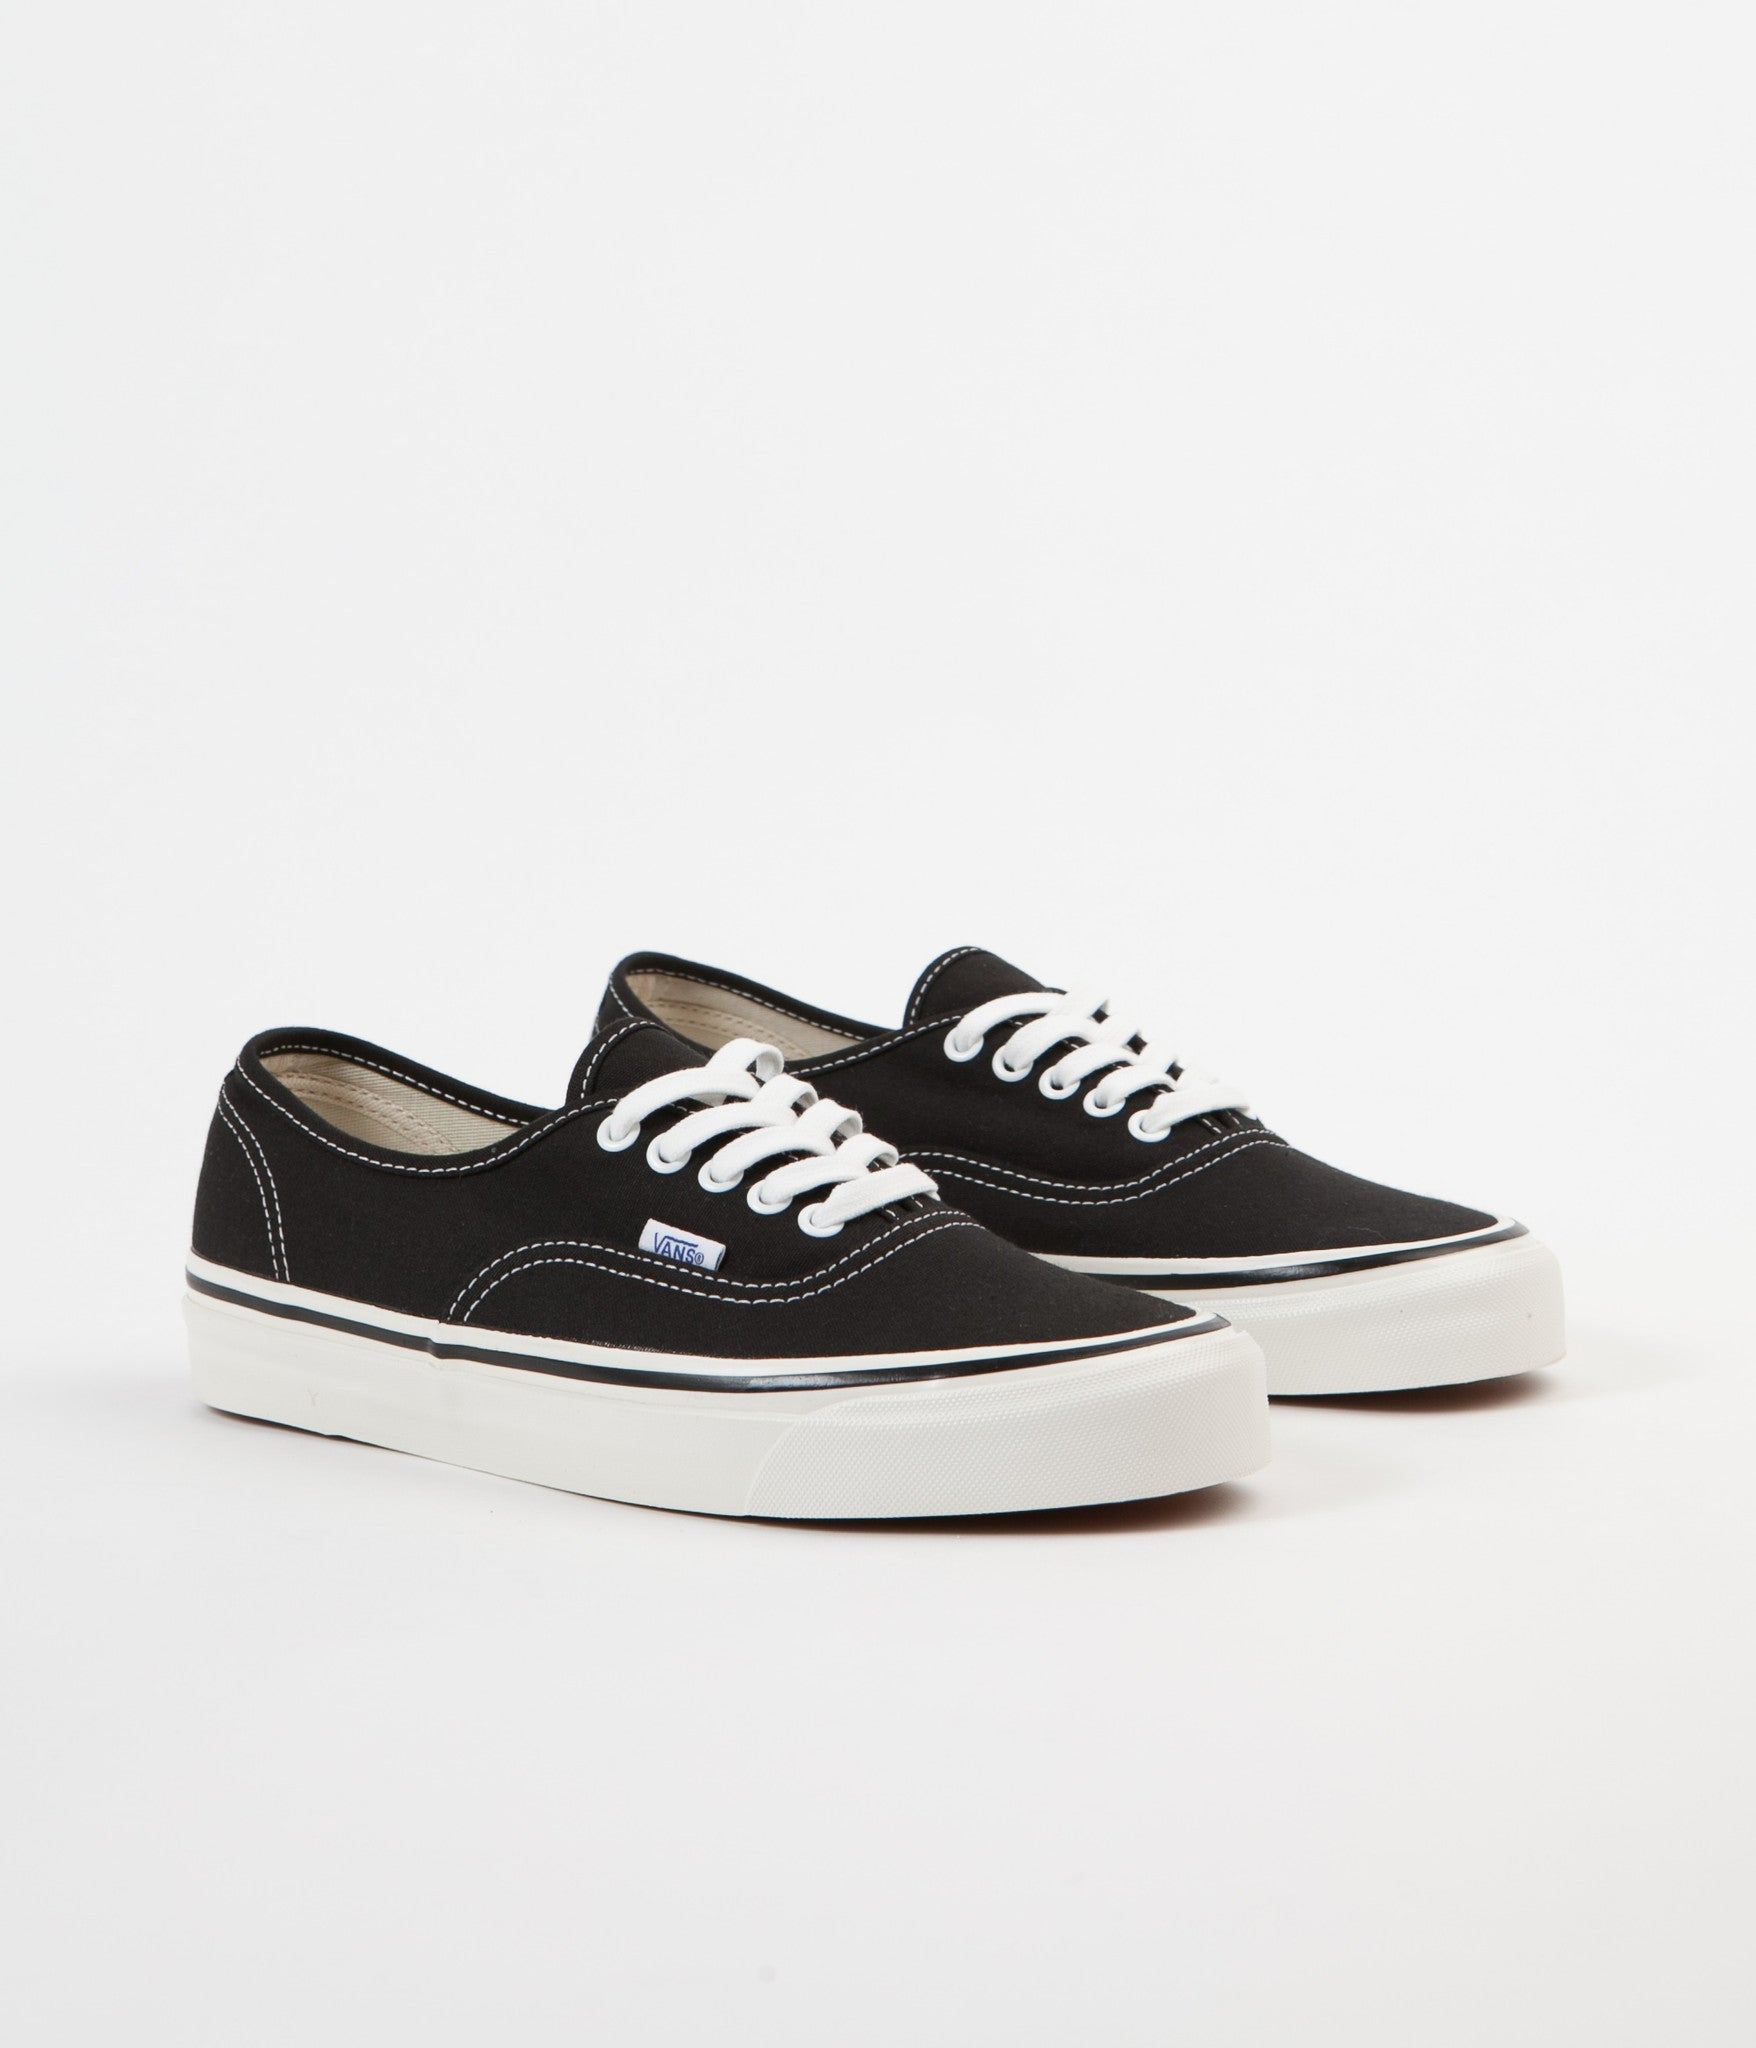 562c42b363d ... Vans Authentic 44 DX Anaheim Factory Shoes - Black ...